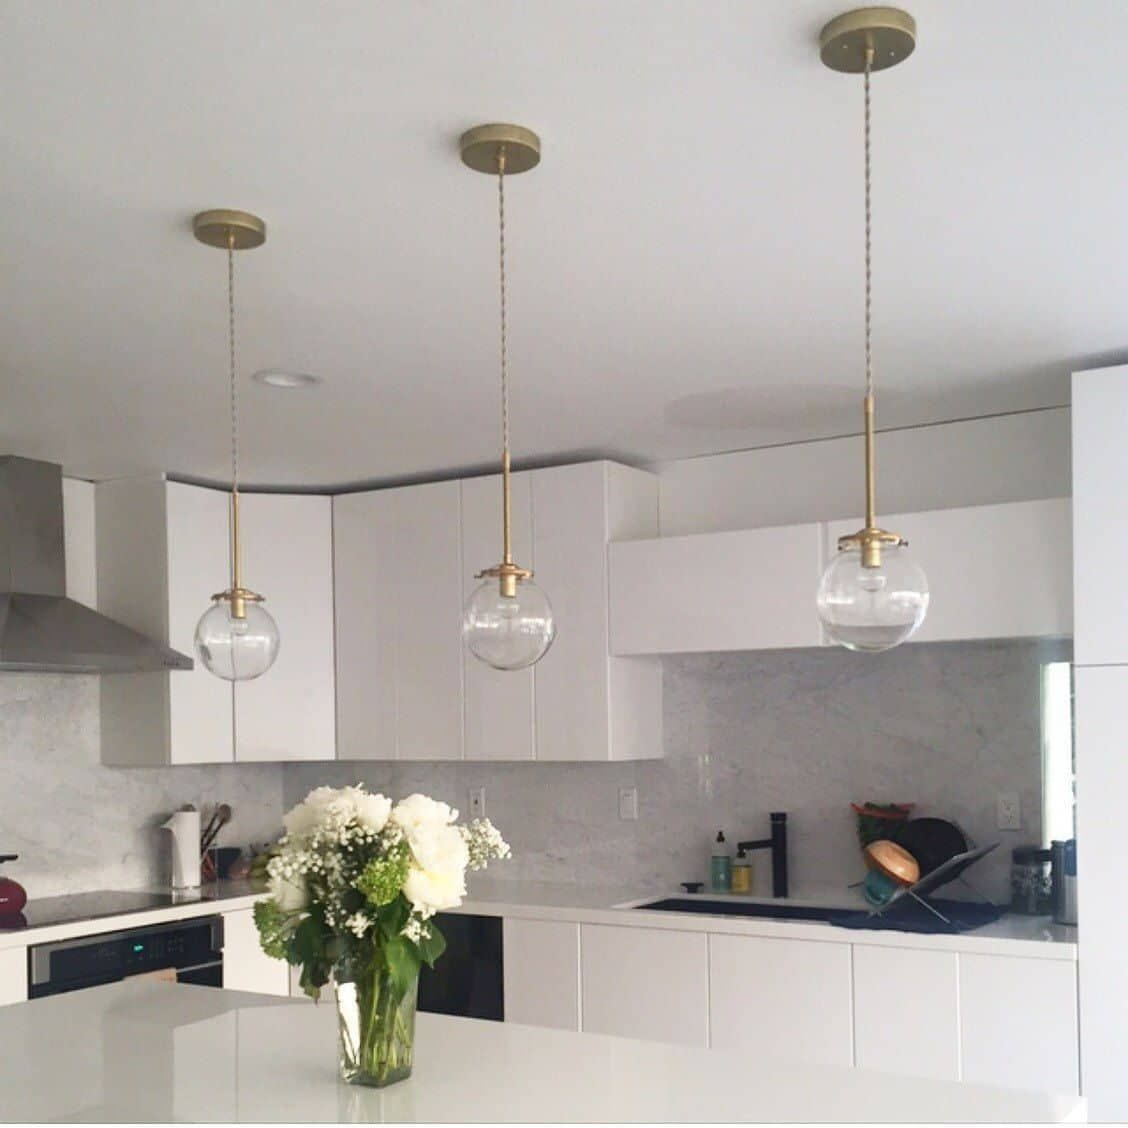 Modern Kitchen Using Clear Gl Pendants Hung Over Island Pendant Light Fixtures For Charming And Clic Choice Glpendantlights